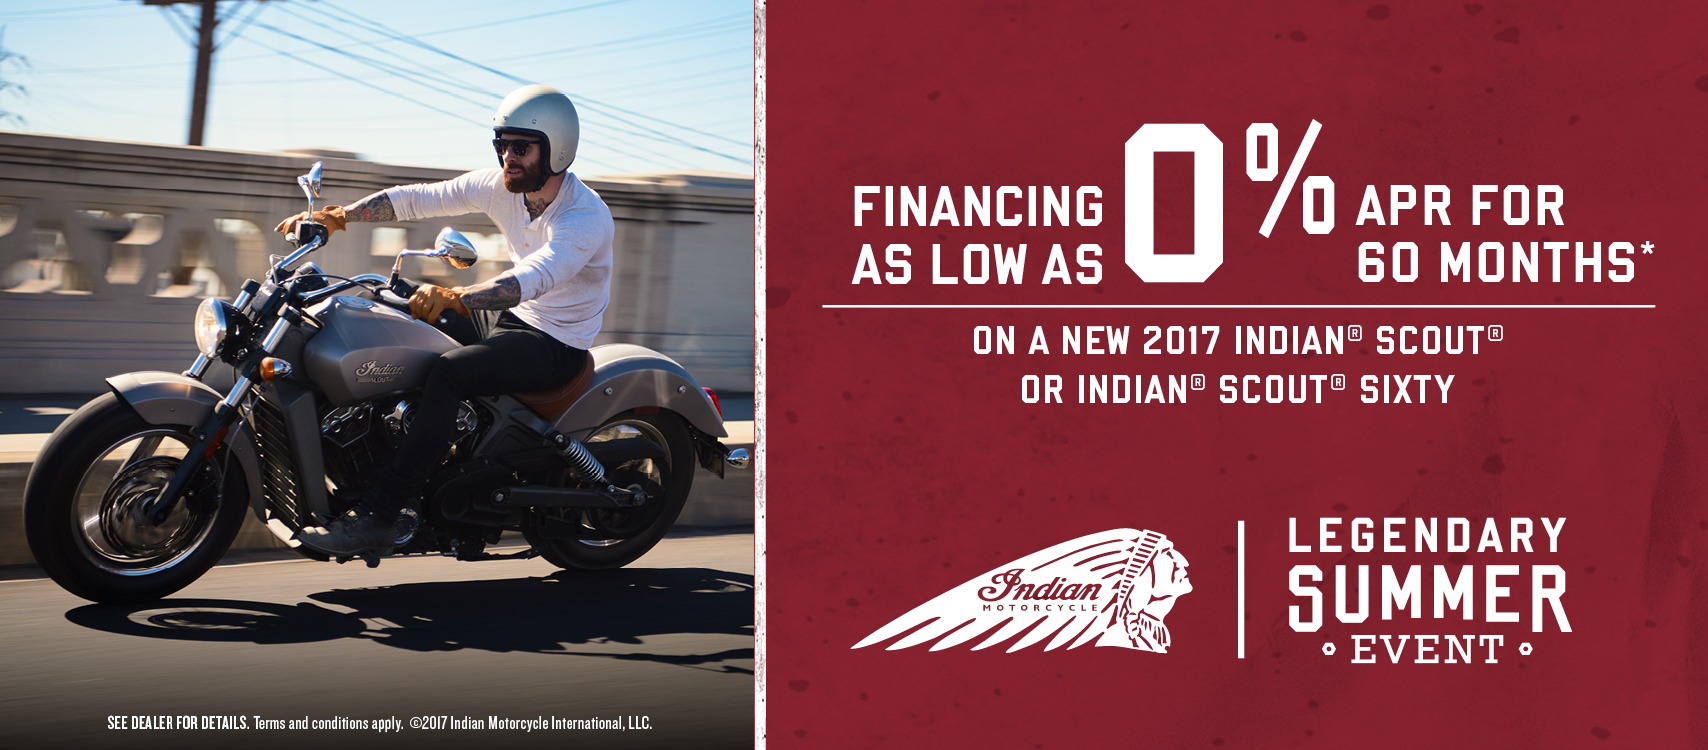 Financing as low as 0% APR for 60 months on a new 2017 Indian Scout or Indian Scout Sixty. Terms and conditions apply.